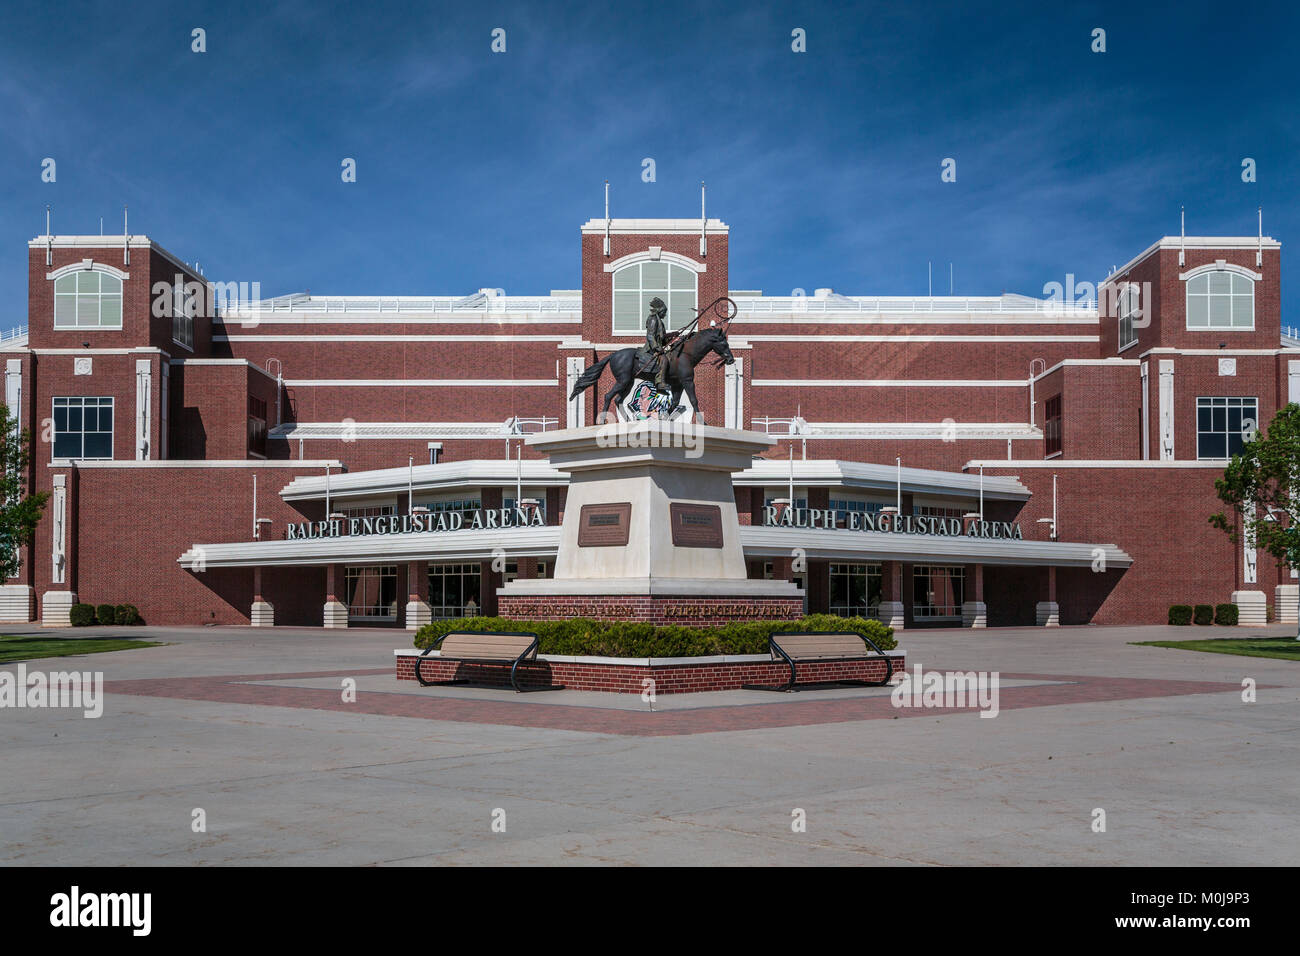 The Ralph Engelstad Arena on the campus of the University of North Dakota in Grand Forks, North Dakota, USA. - Stock Image